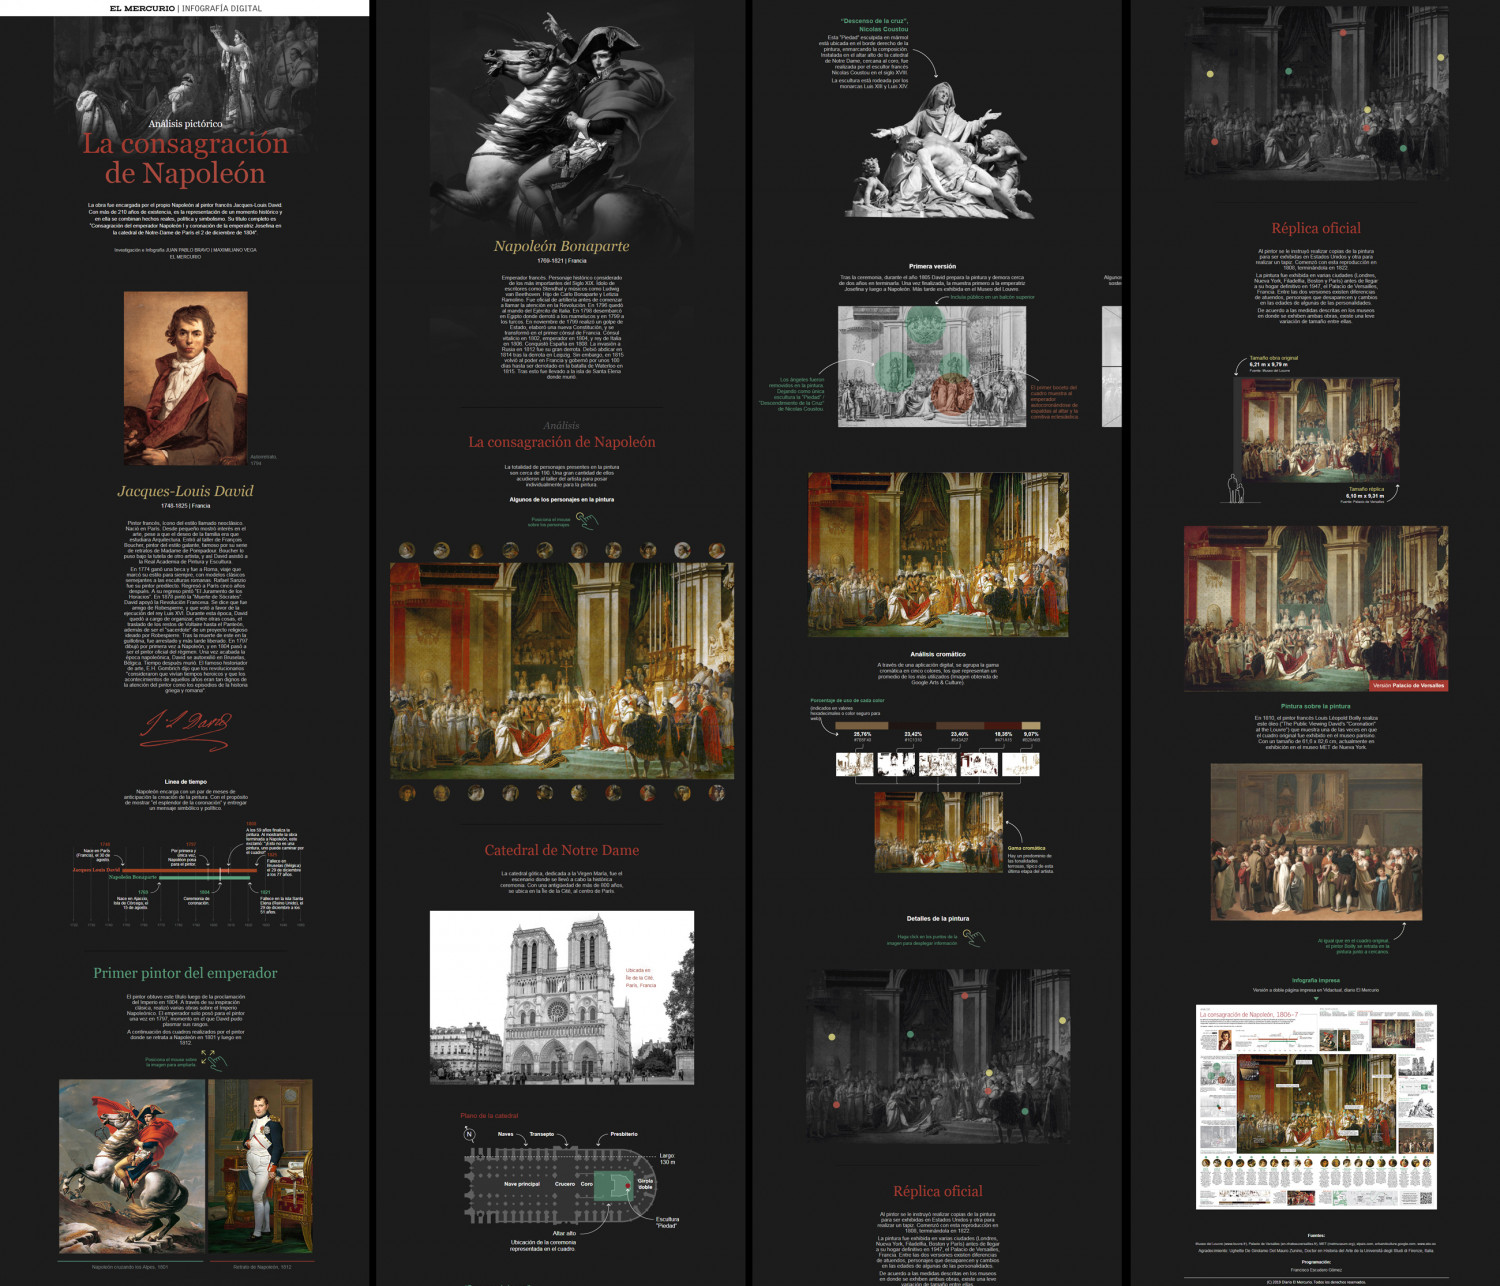 """Digital Infographic / Analysis of the painting """"The Coronation of Napoleon"""" by Jacques-Louis David, digital version Infographic"""